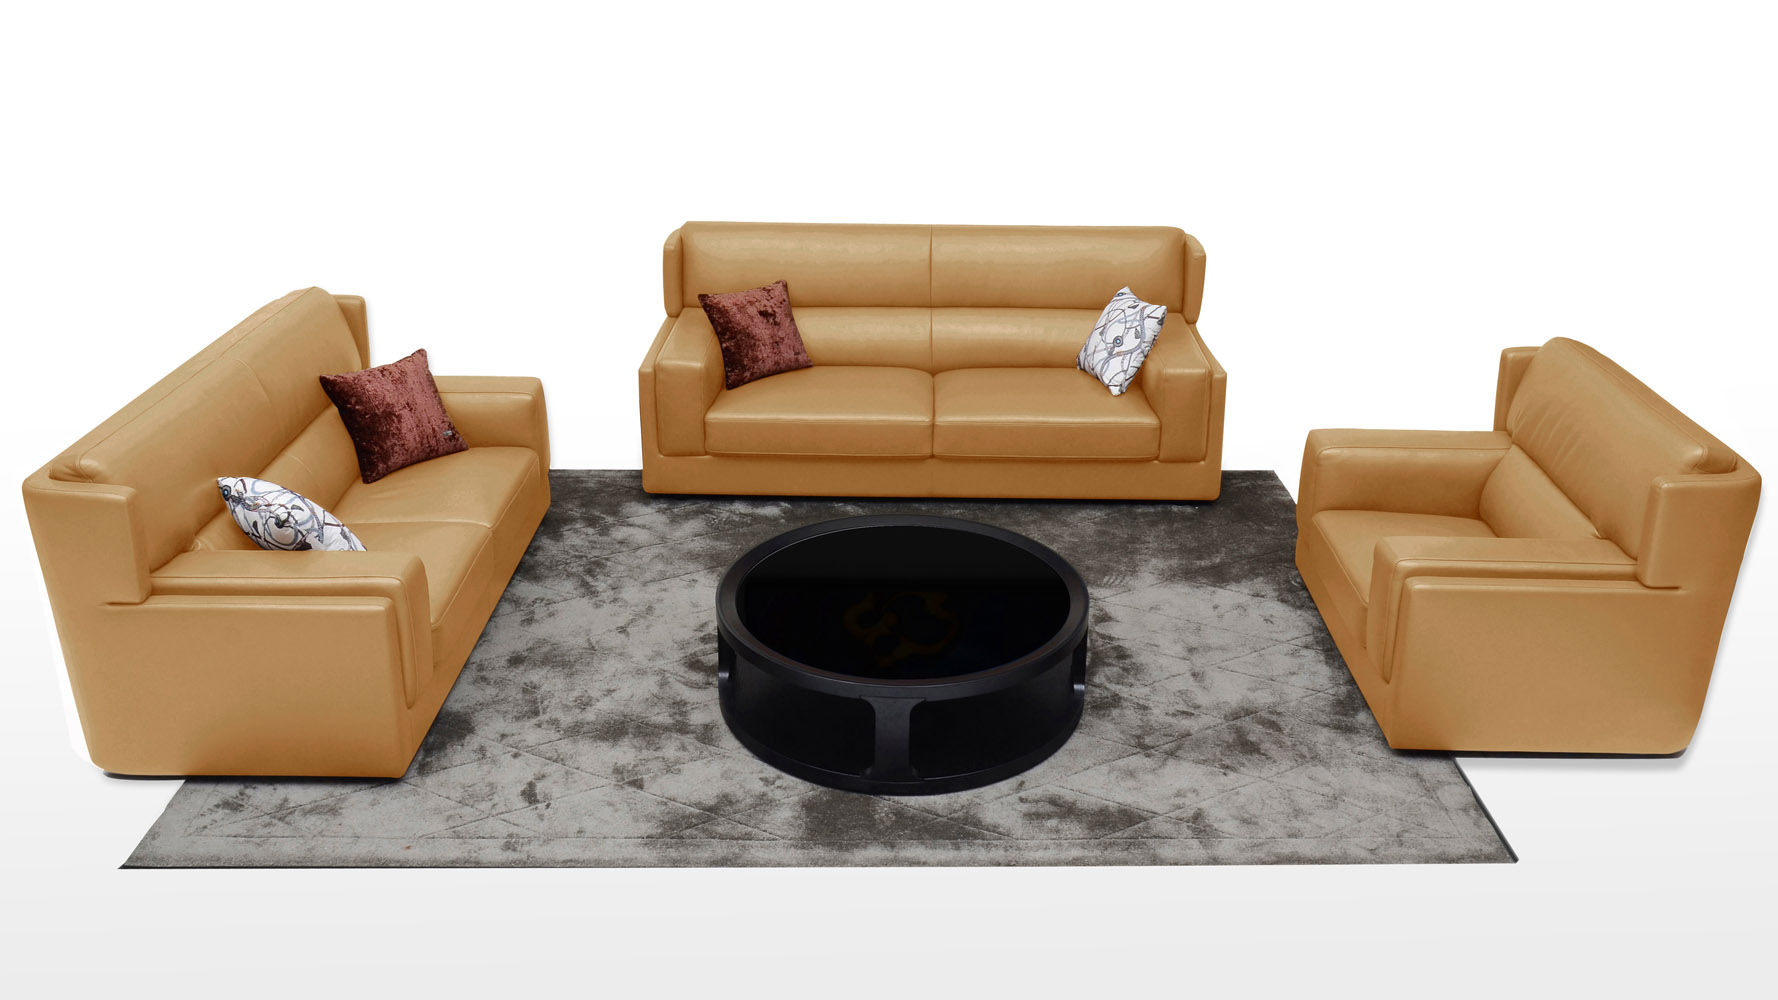 Destin 3 Piece Butterscotch Leather Sofa Set With Armchair | Zuri Furniture